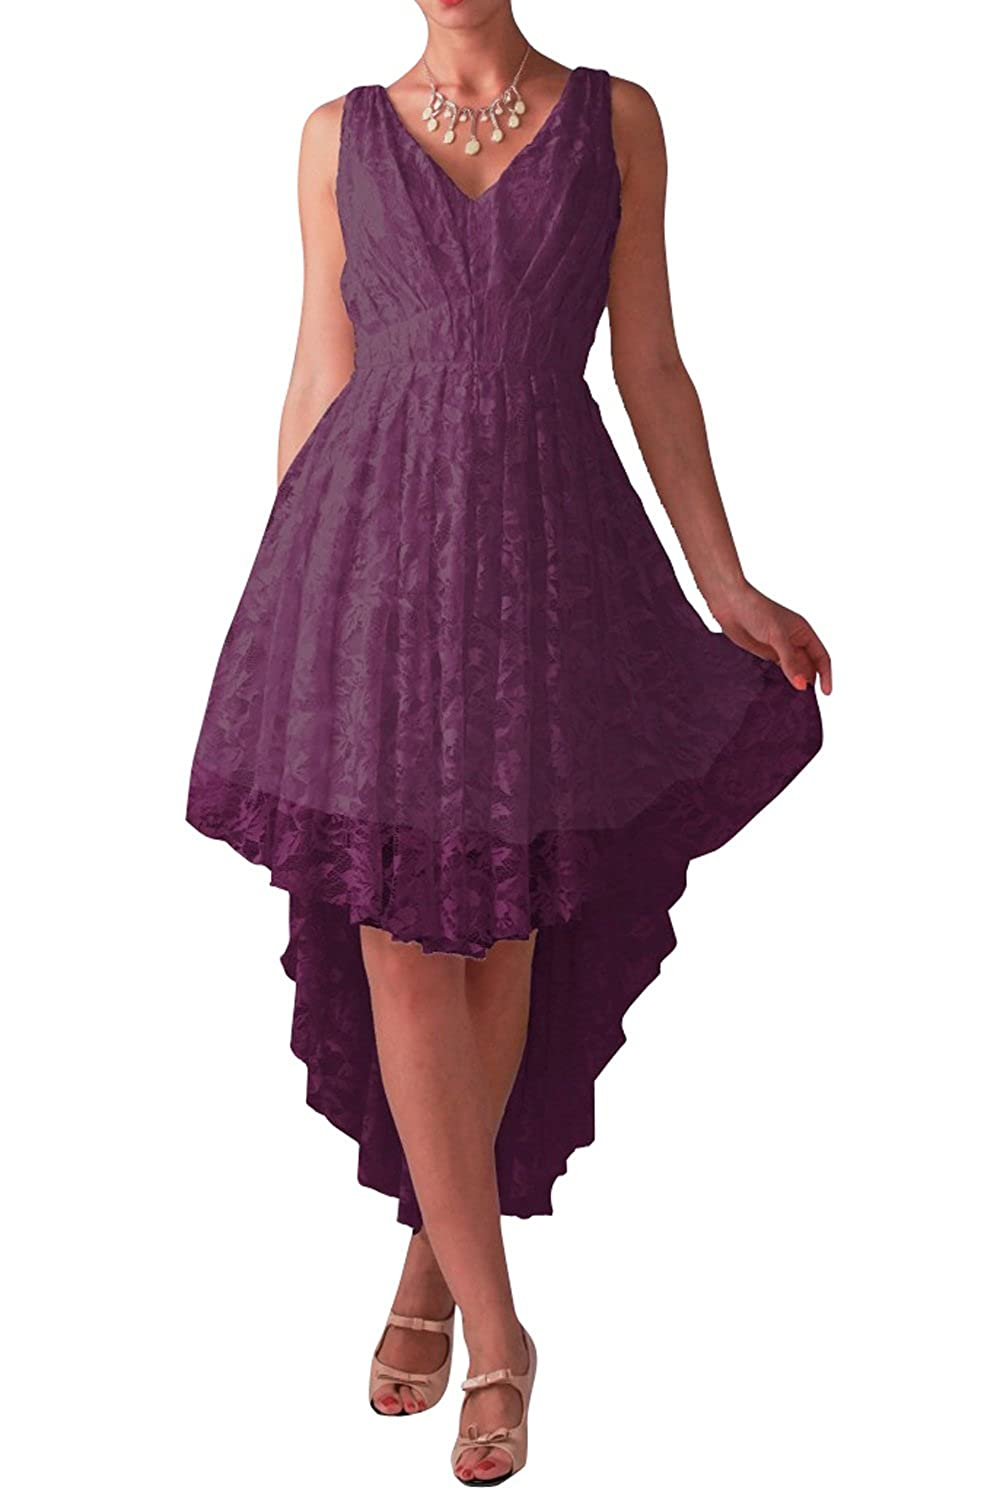 JudyBridal Women V-neck Lace Hi-low Cocktail Homecoming Party Evening Dresses US18W Vintage Violet